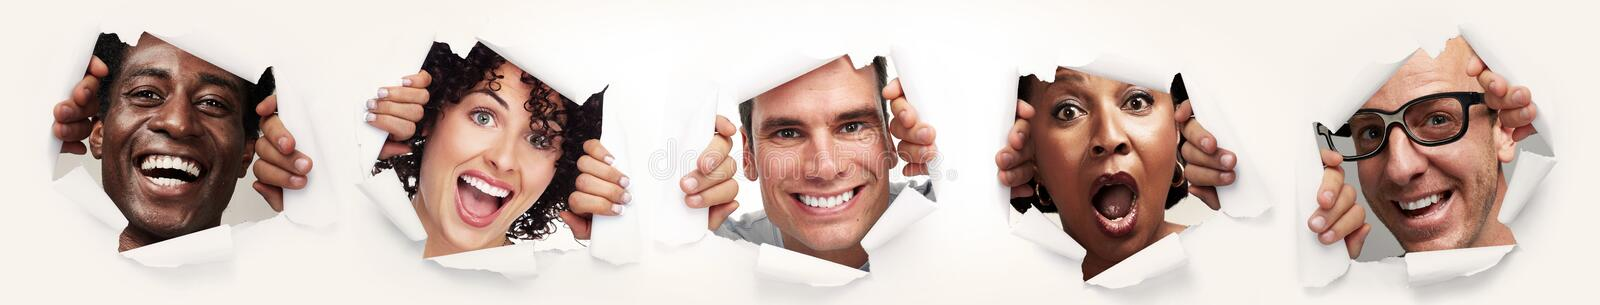 Happy joyful people stock photography